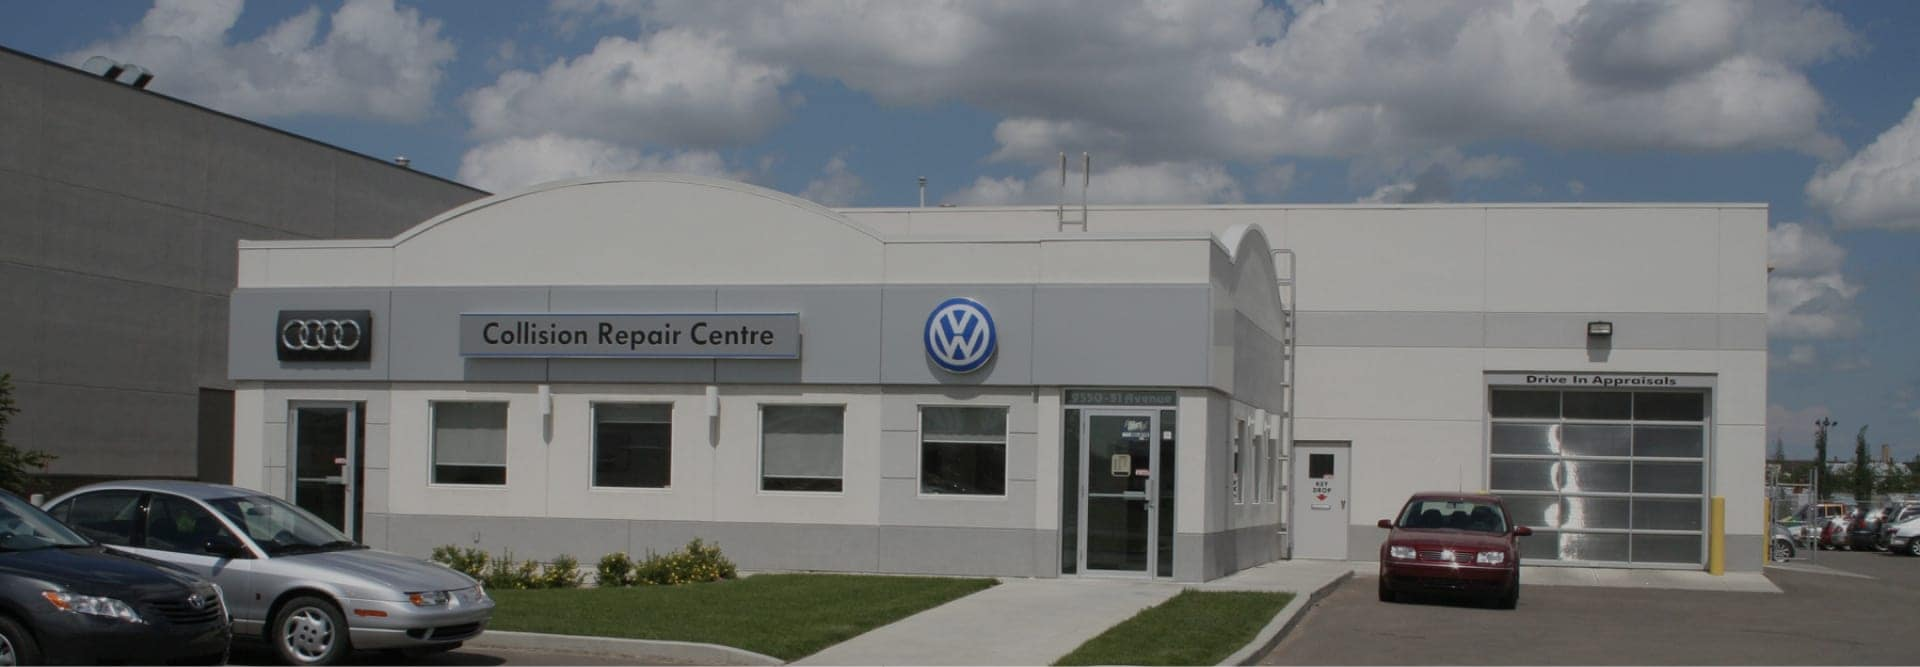 Front view of collision center building